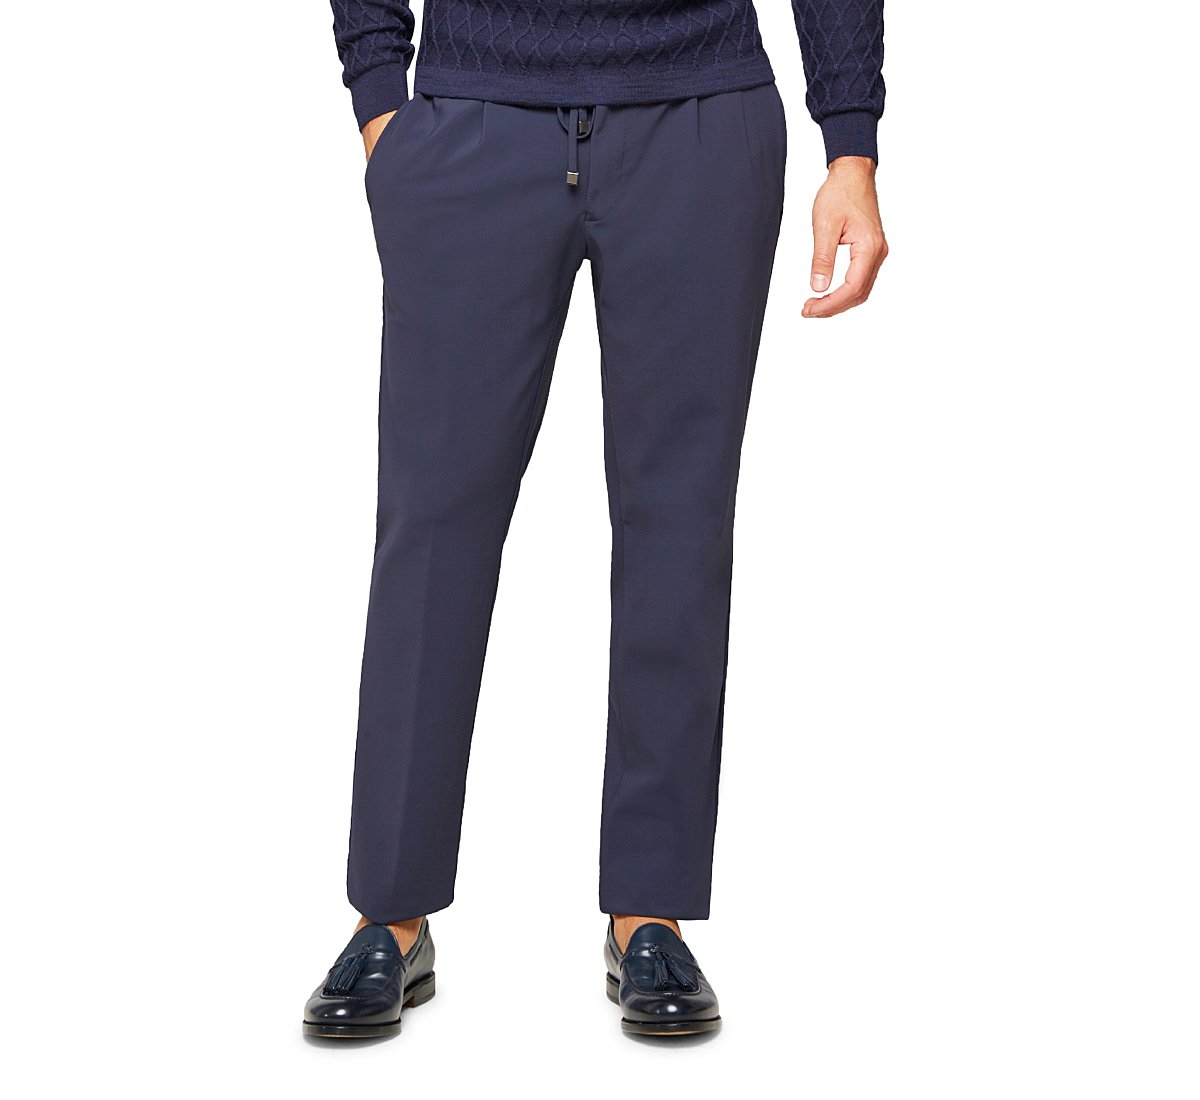 Jogger-fit trousers